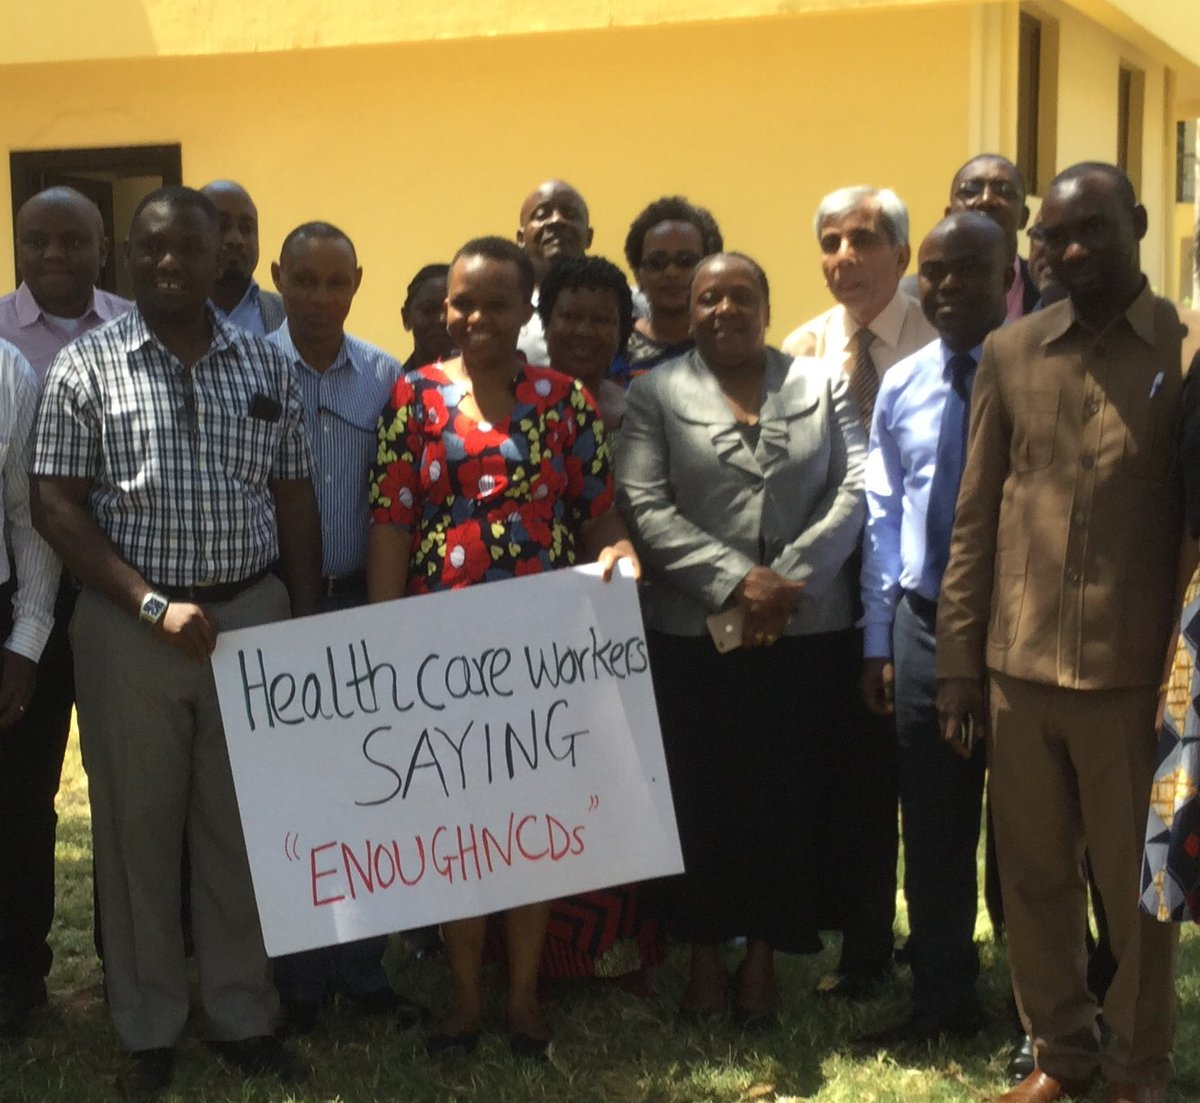 Tanzania NCD Alliance held advocacy meetings during the 2019 Week for Action with medical officers focused on improving health systems for NCDs and UHC